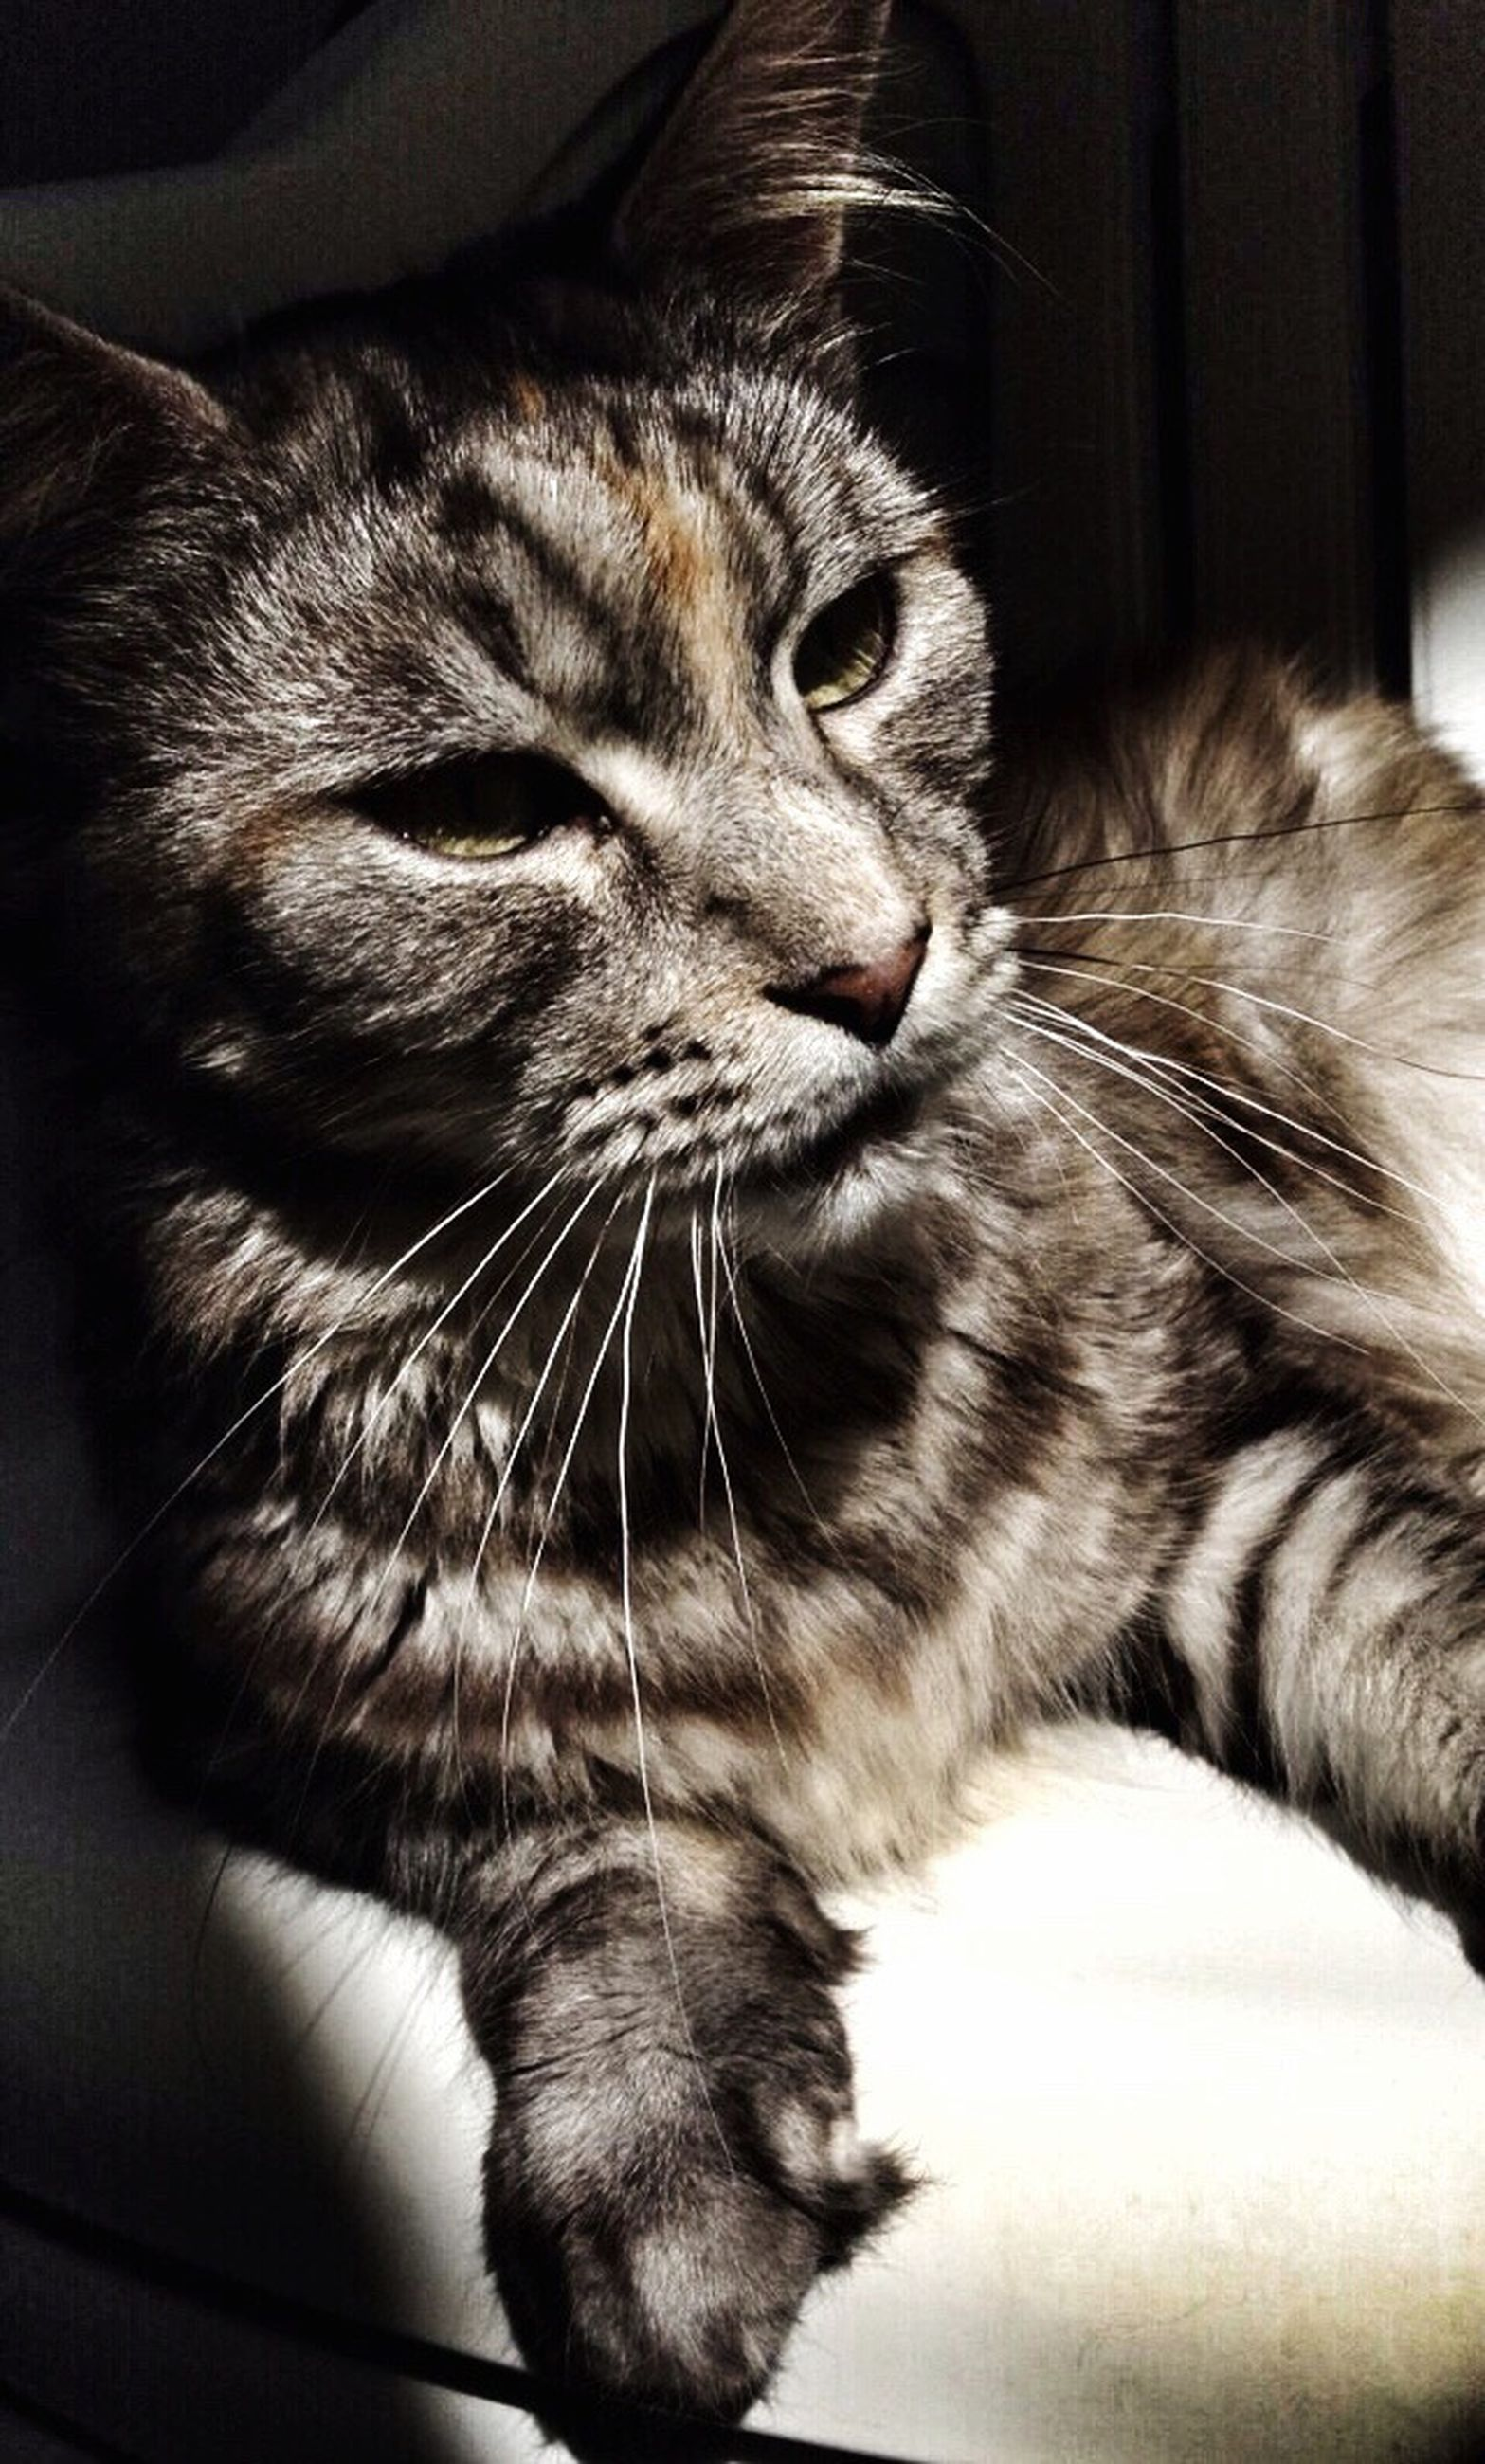 one animal, domestic animals, animal themes, pets, domestic cat, cat, feline, mammal, close-up, whisker, looking away, indoors, relaxation, animal head, zoology, selective focus, at home, curiosity, resting, animal, day, whiskers, no people